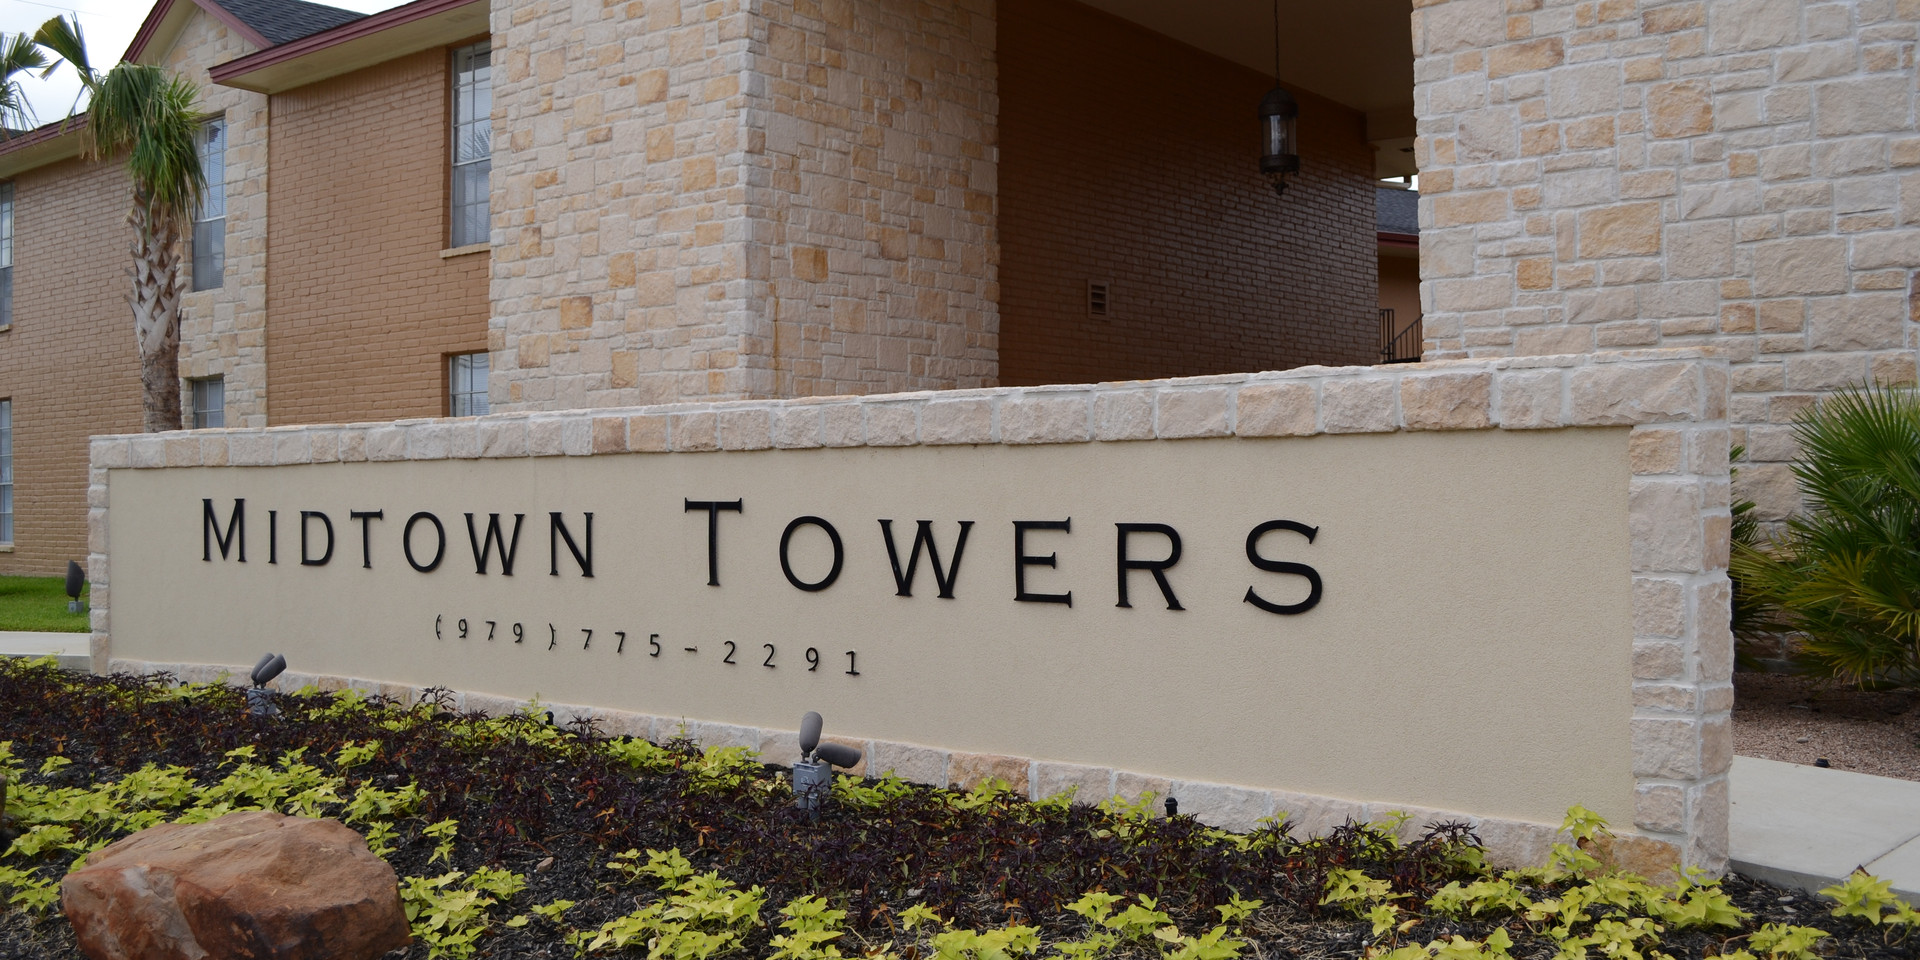 Midtown Towers